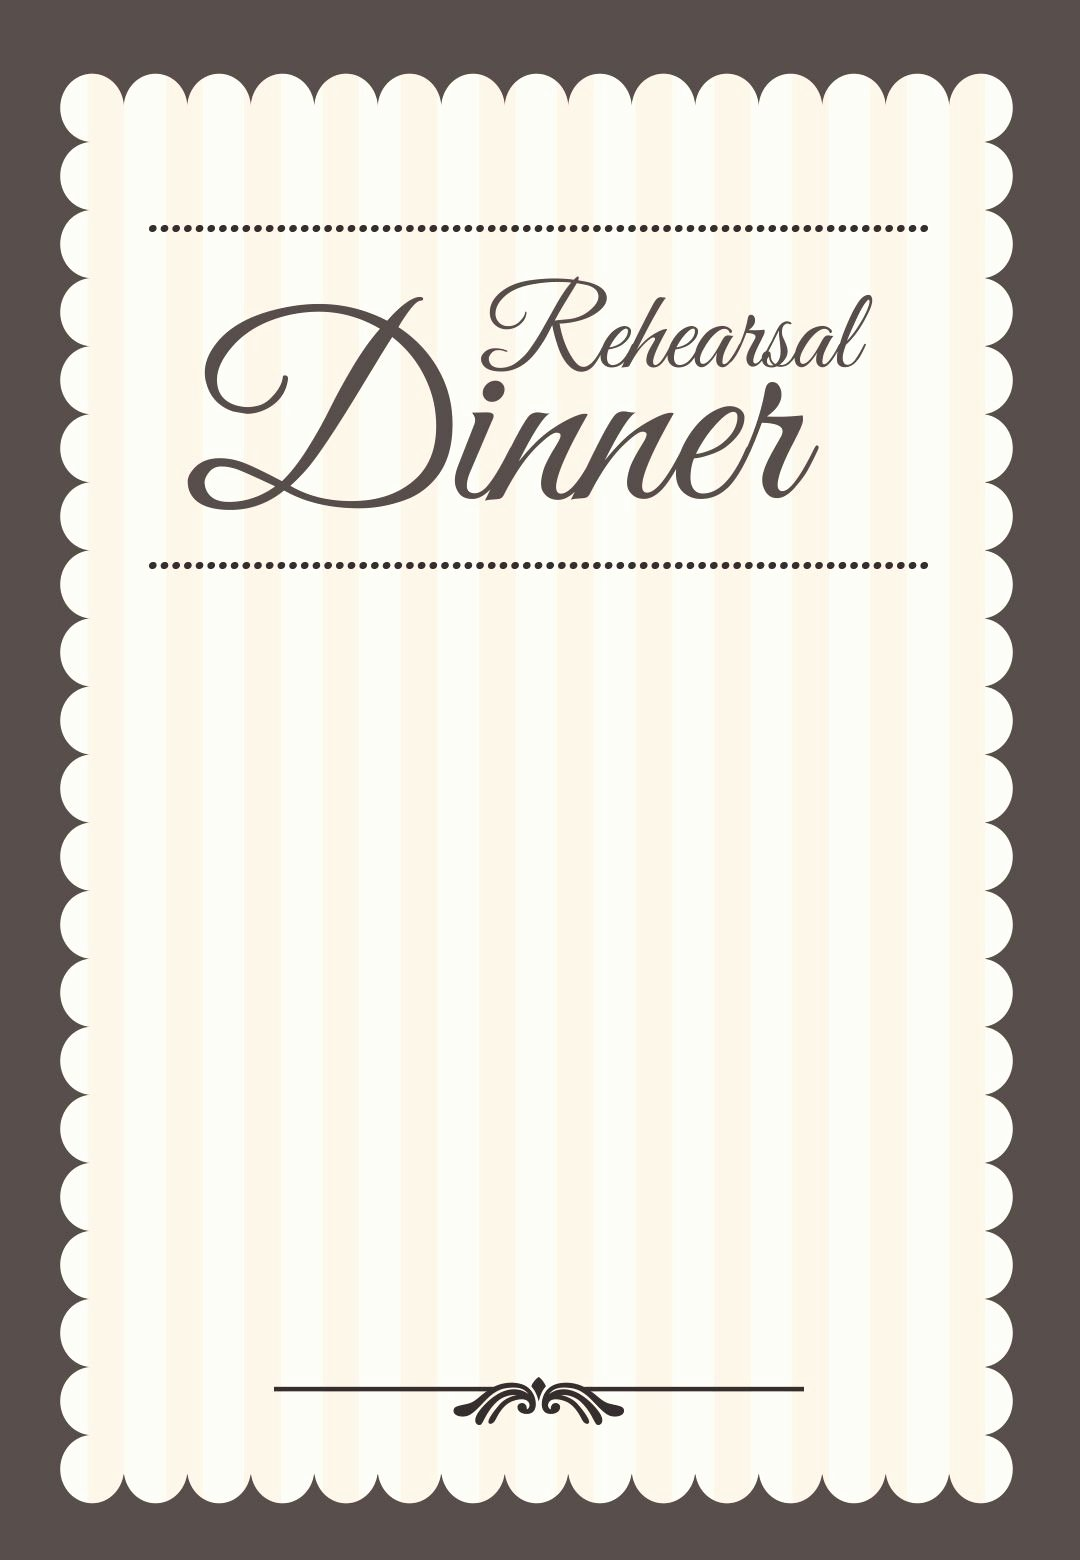 Stamped Rehearsal Dinner Free Printable Rehearsal Dinner